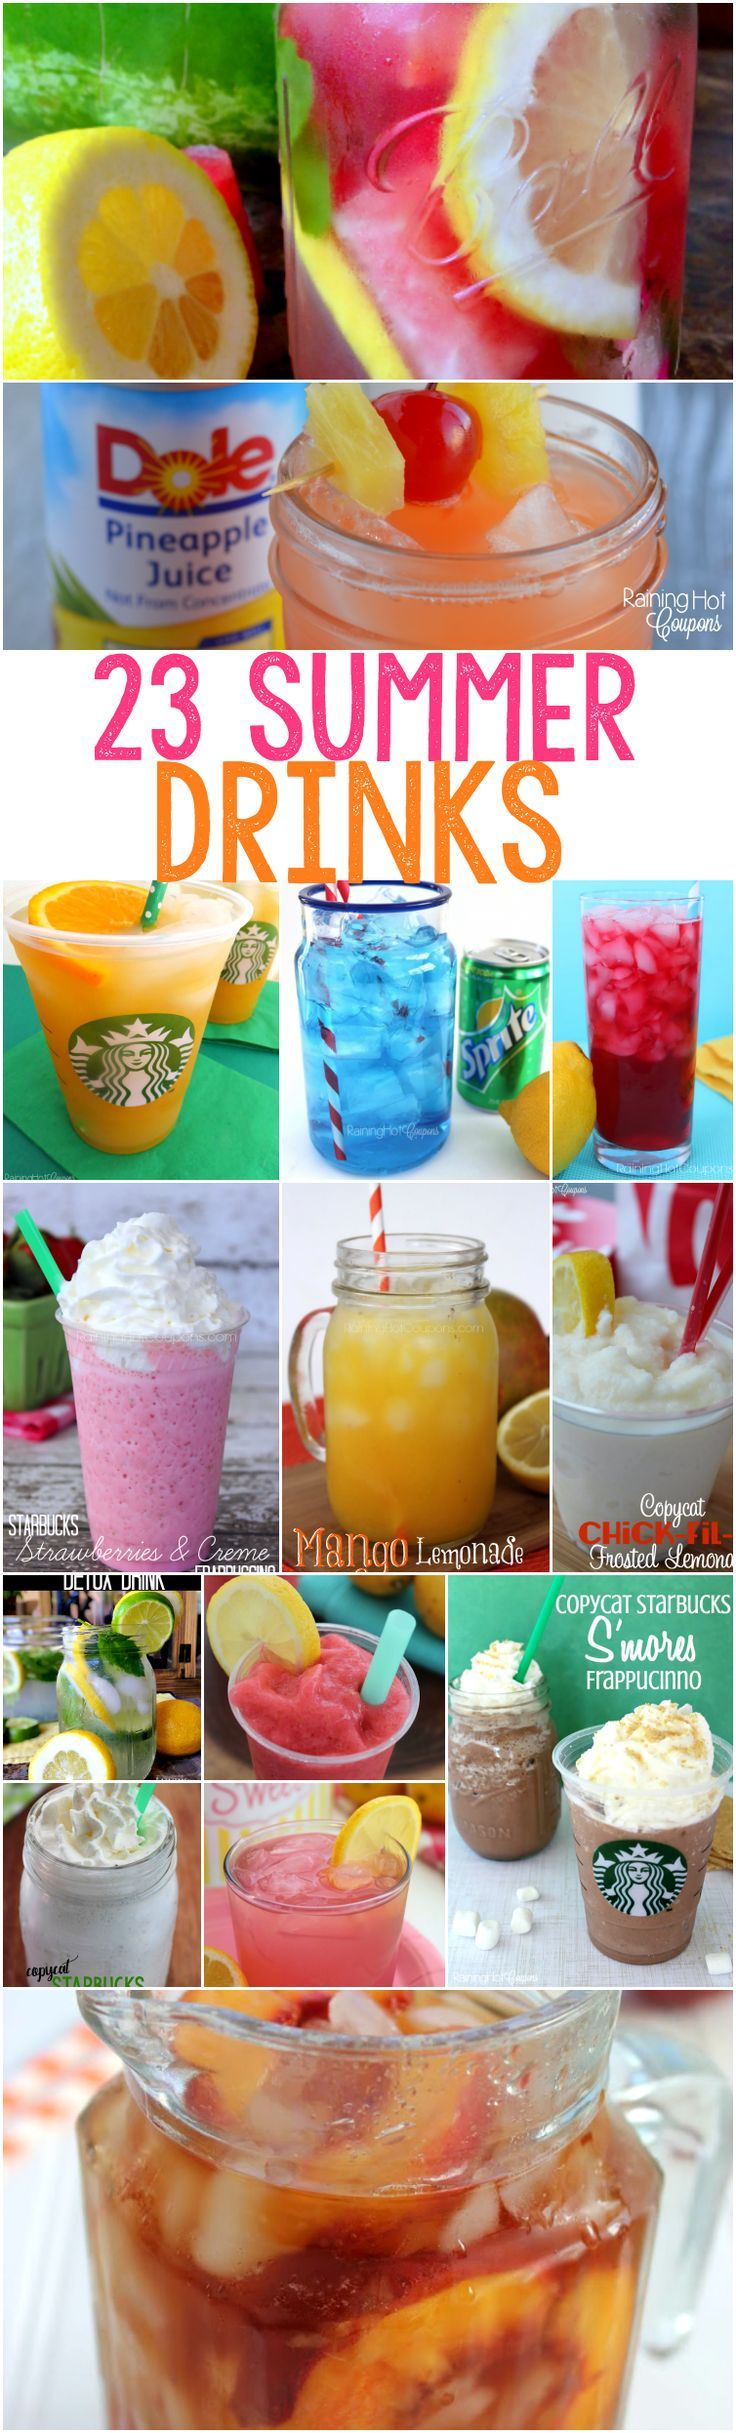 23 Refreshing Drink Recipes for Summer: Der Sommer naht! Kreiere dir kühle Erfrischungssmoothies!